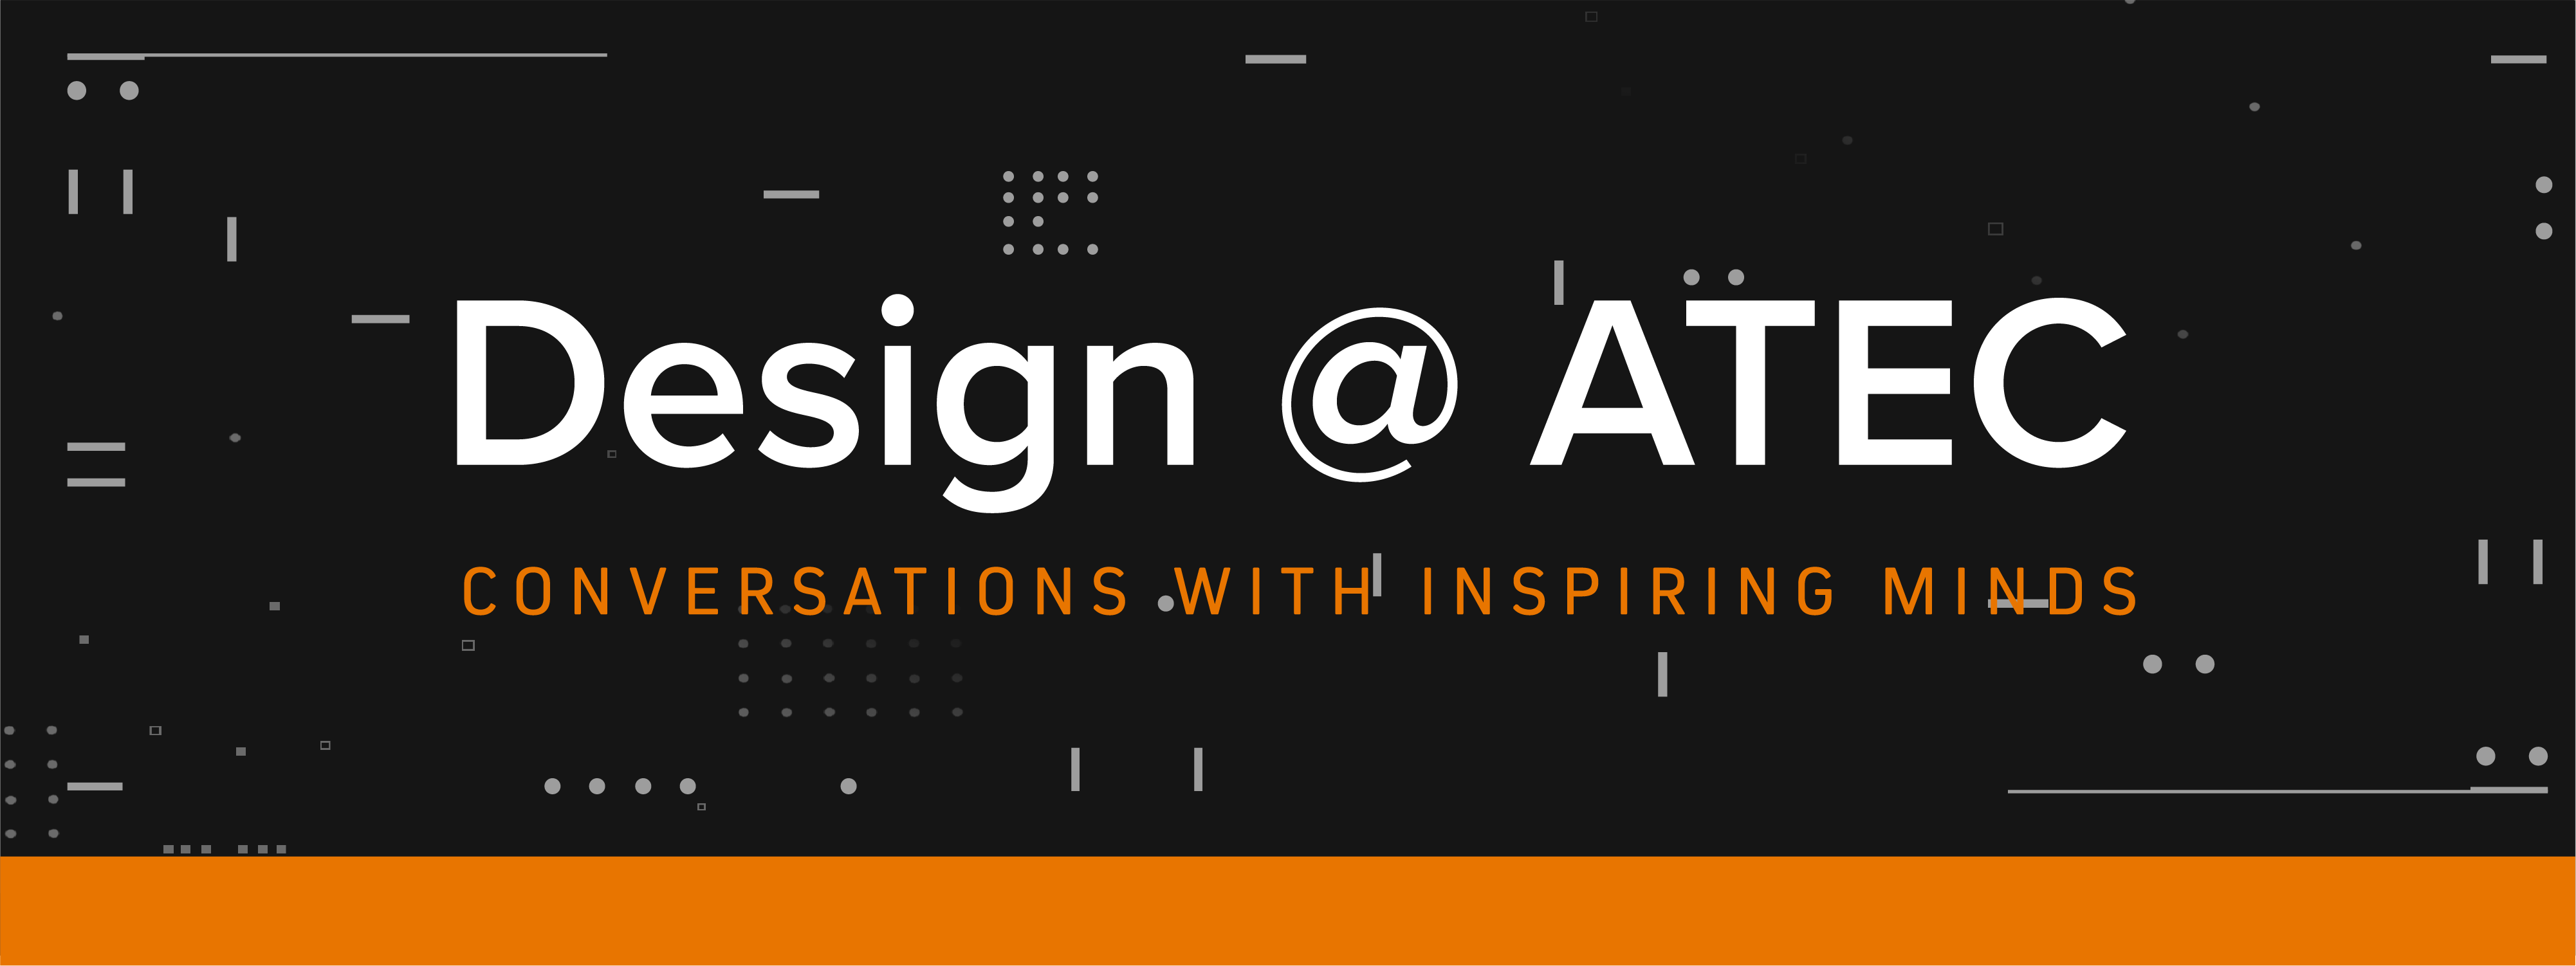 Series Banner- Design at ATEC Conversations With Inspiring Minds